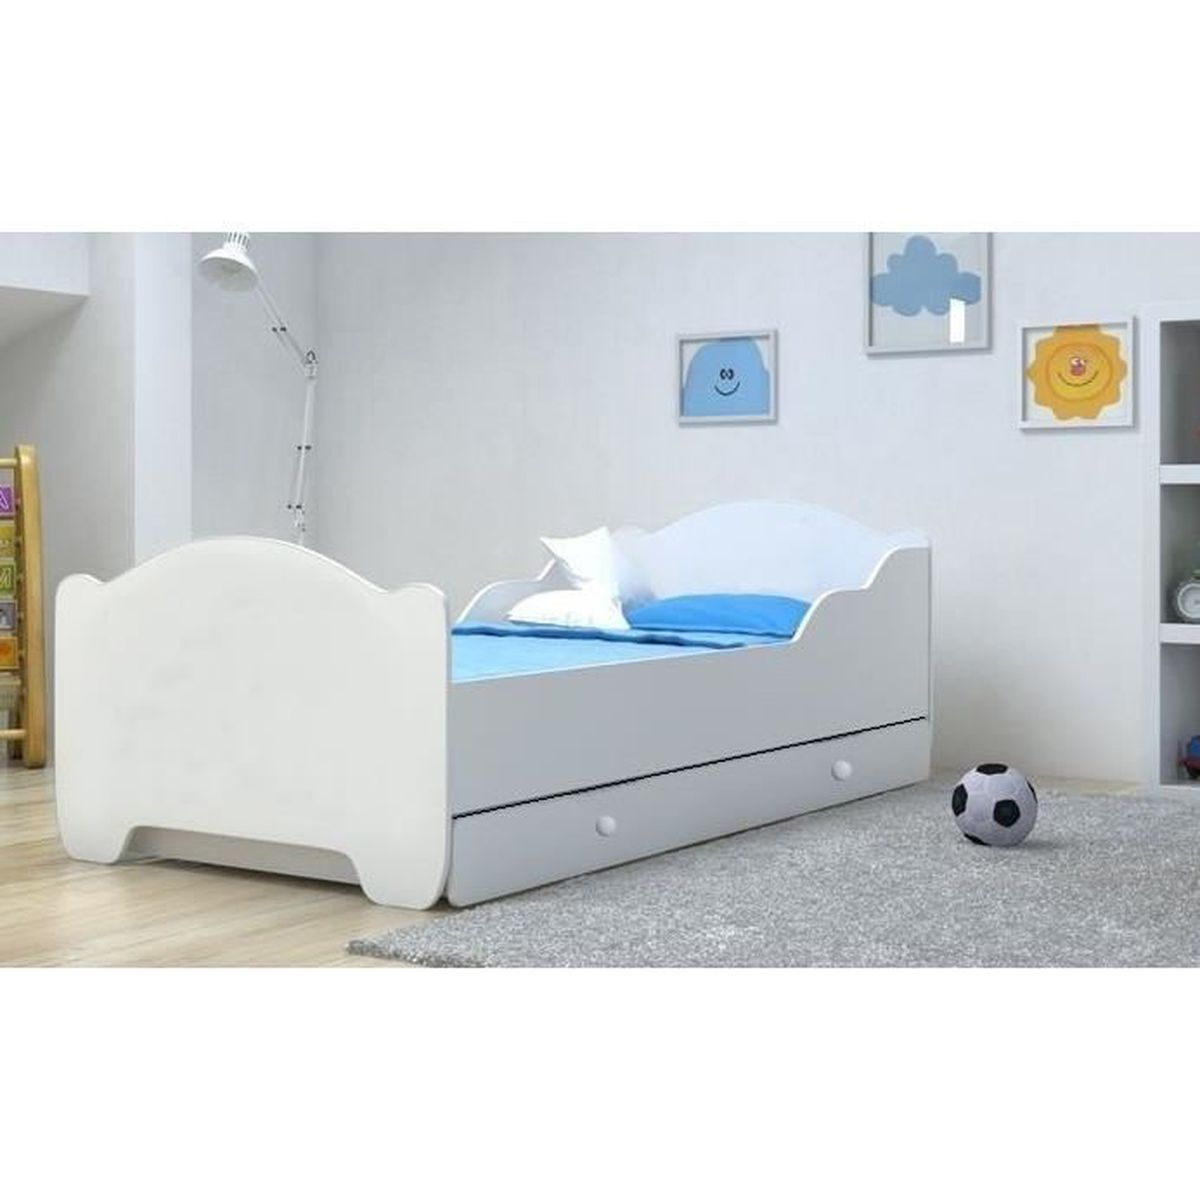 lit enfant m 140x70cm tiroir matelas sommier achat vente lit complet lit enfant m 140x70cm. Black Bedroom Furniture Sets. Home Design Ideas